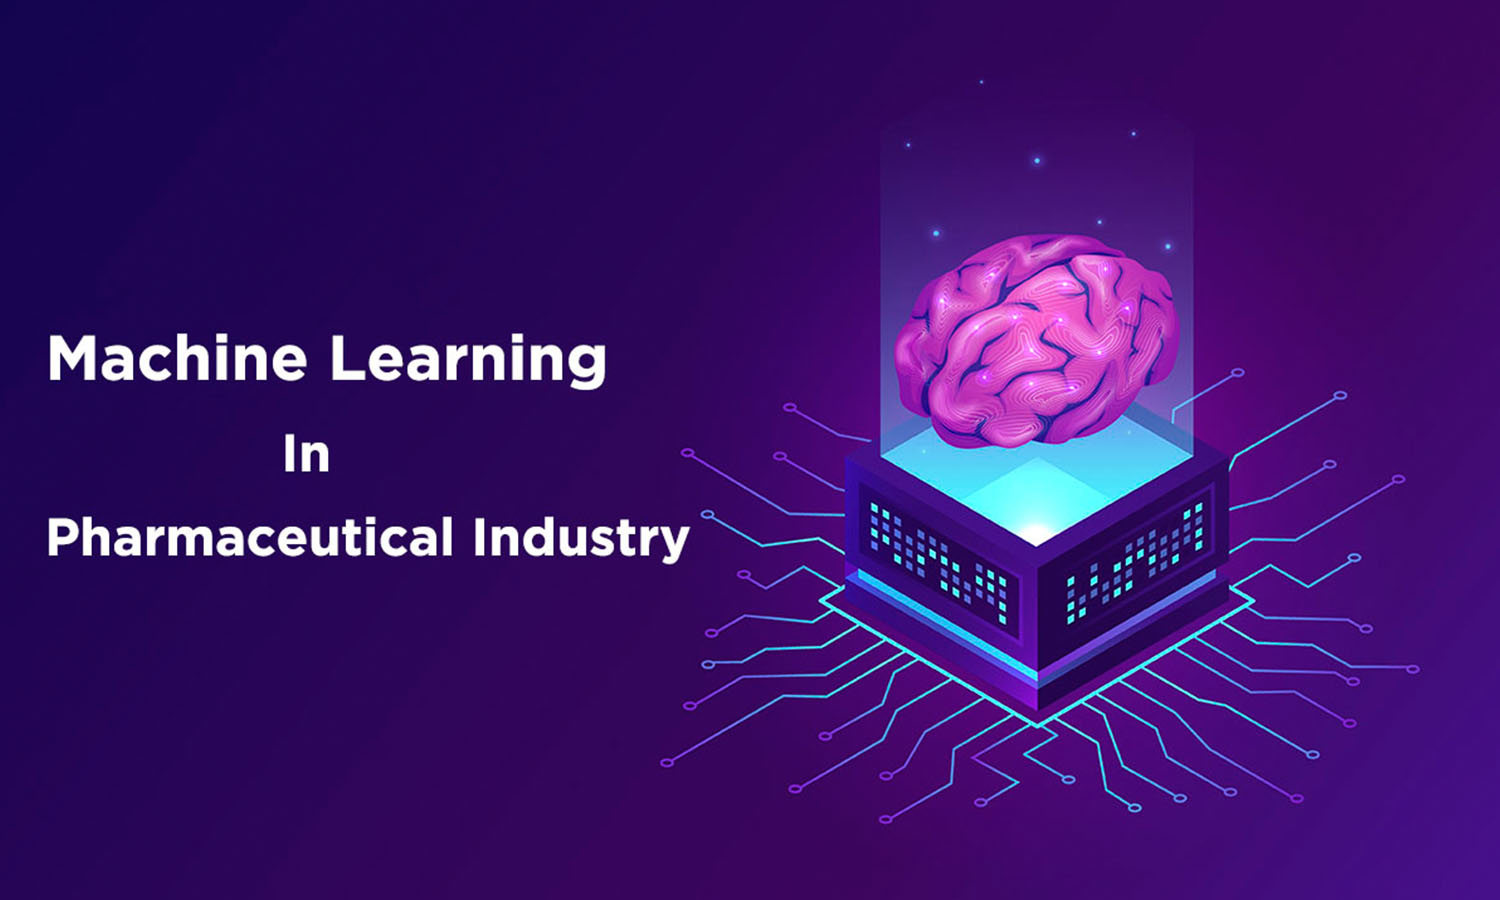 6 Applications of Machine Learning in the Pharmaceutical and Healthcare Industry